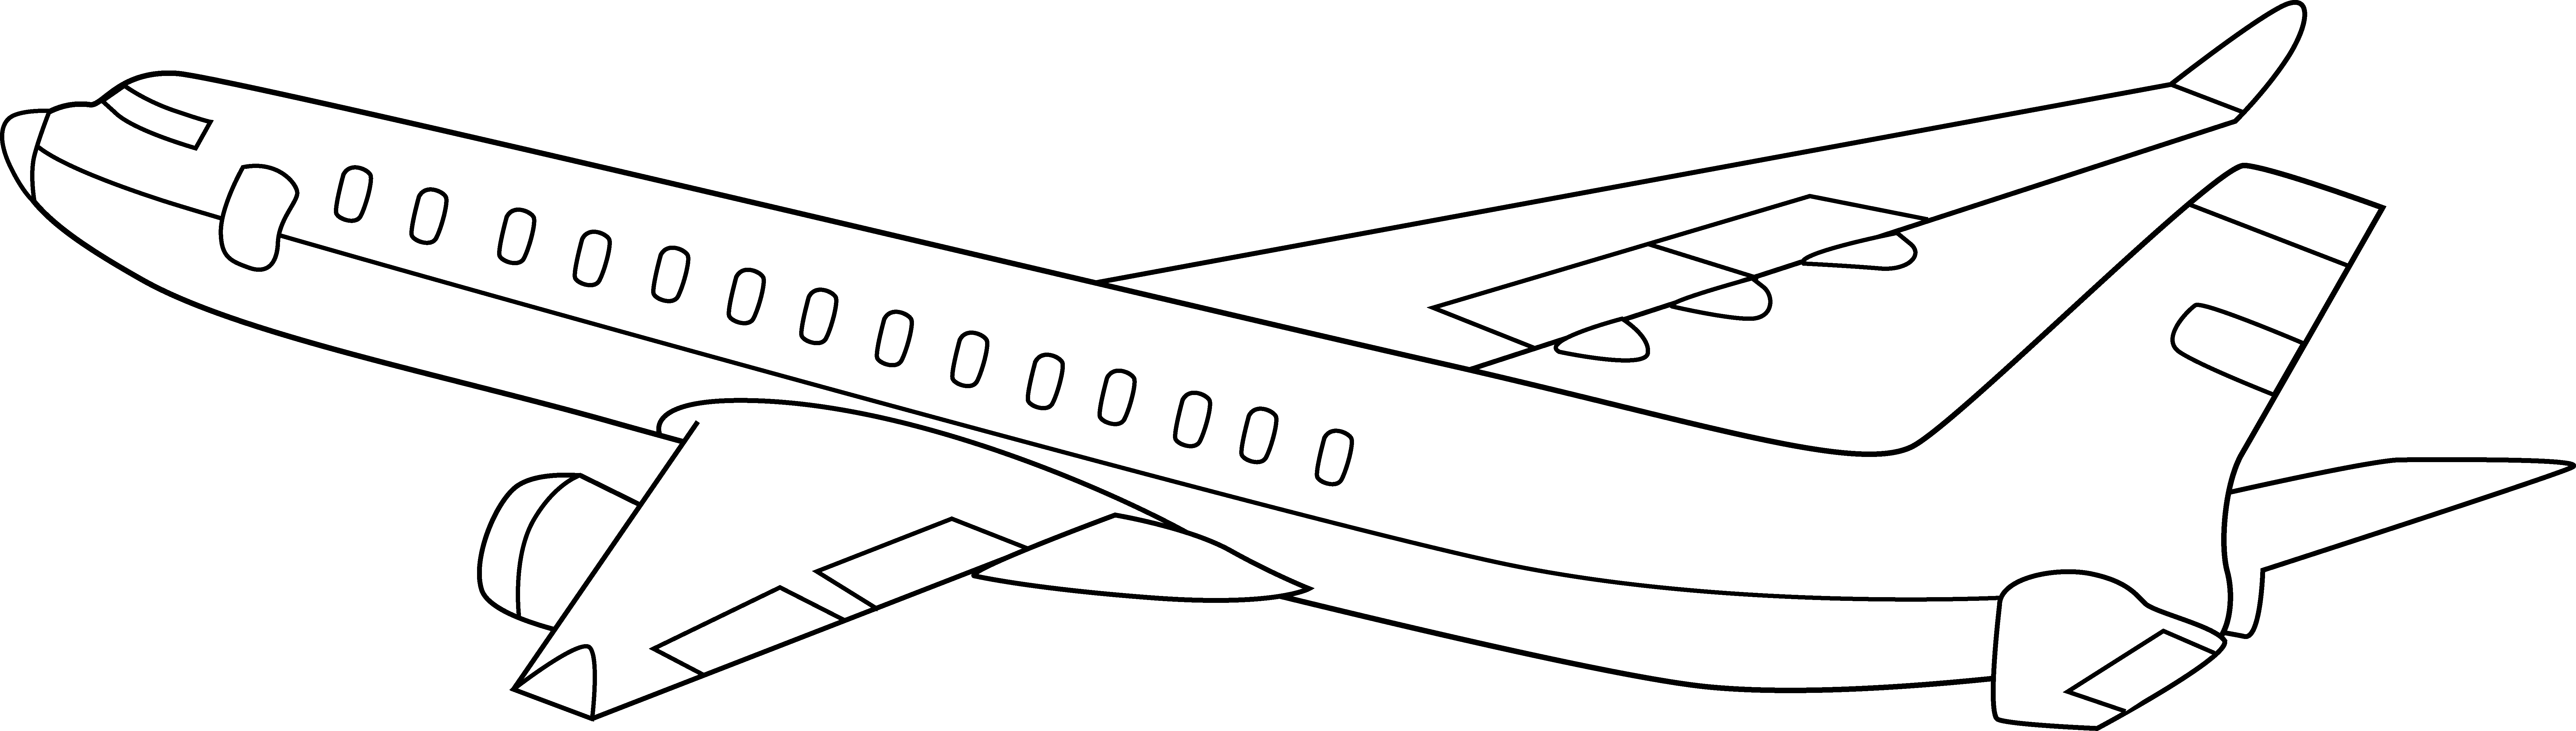 Free Black And White Airplane Pictures, Download Free Clip.